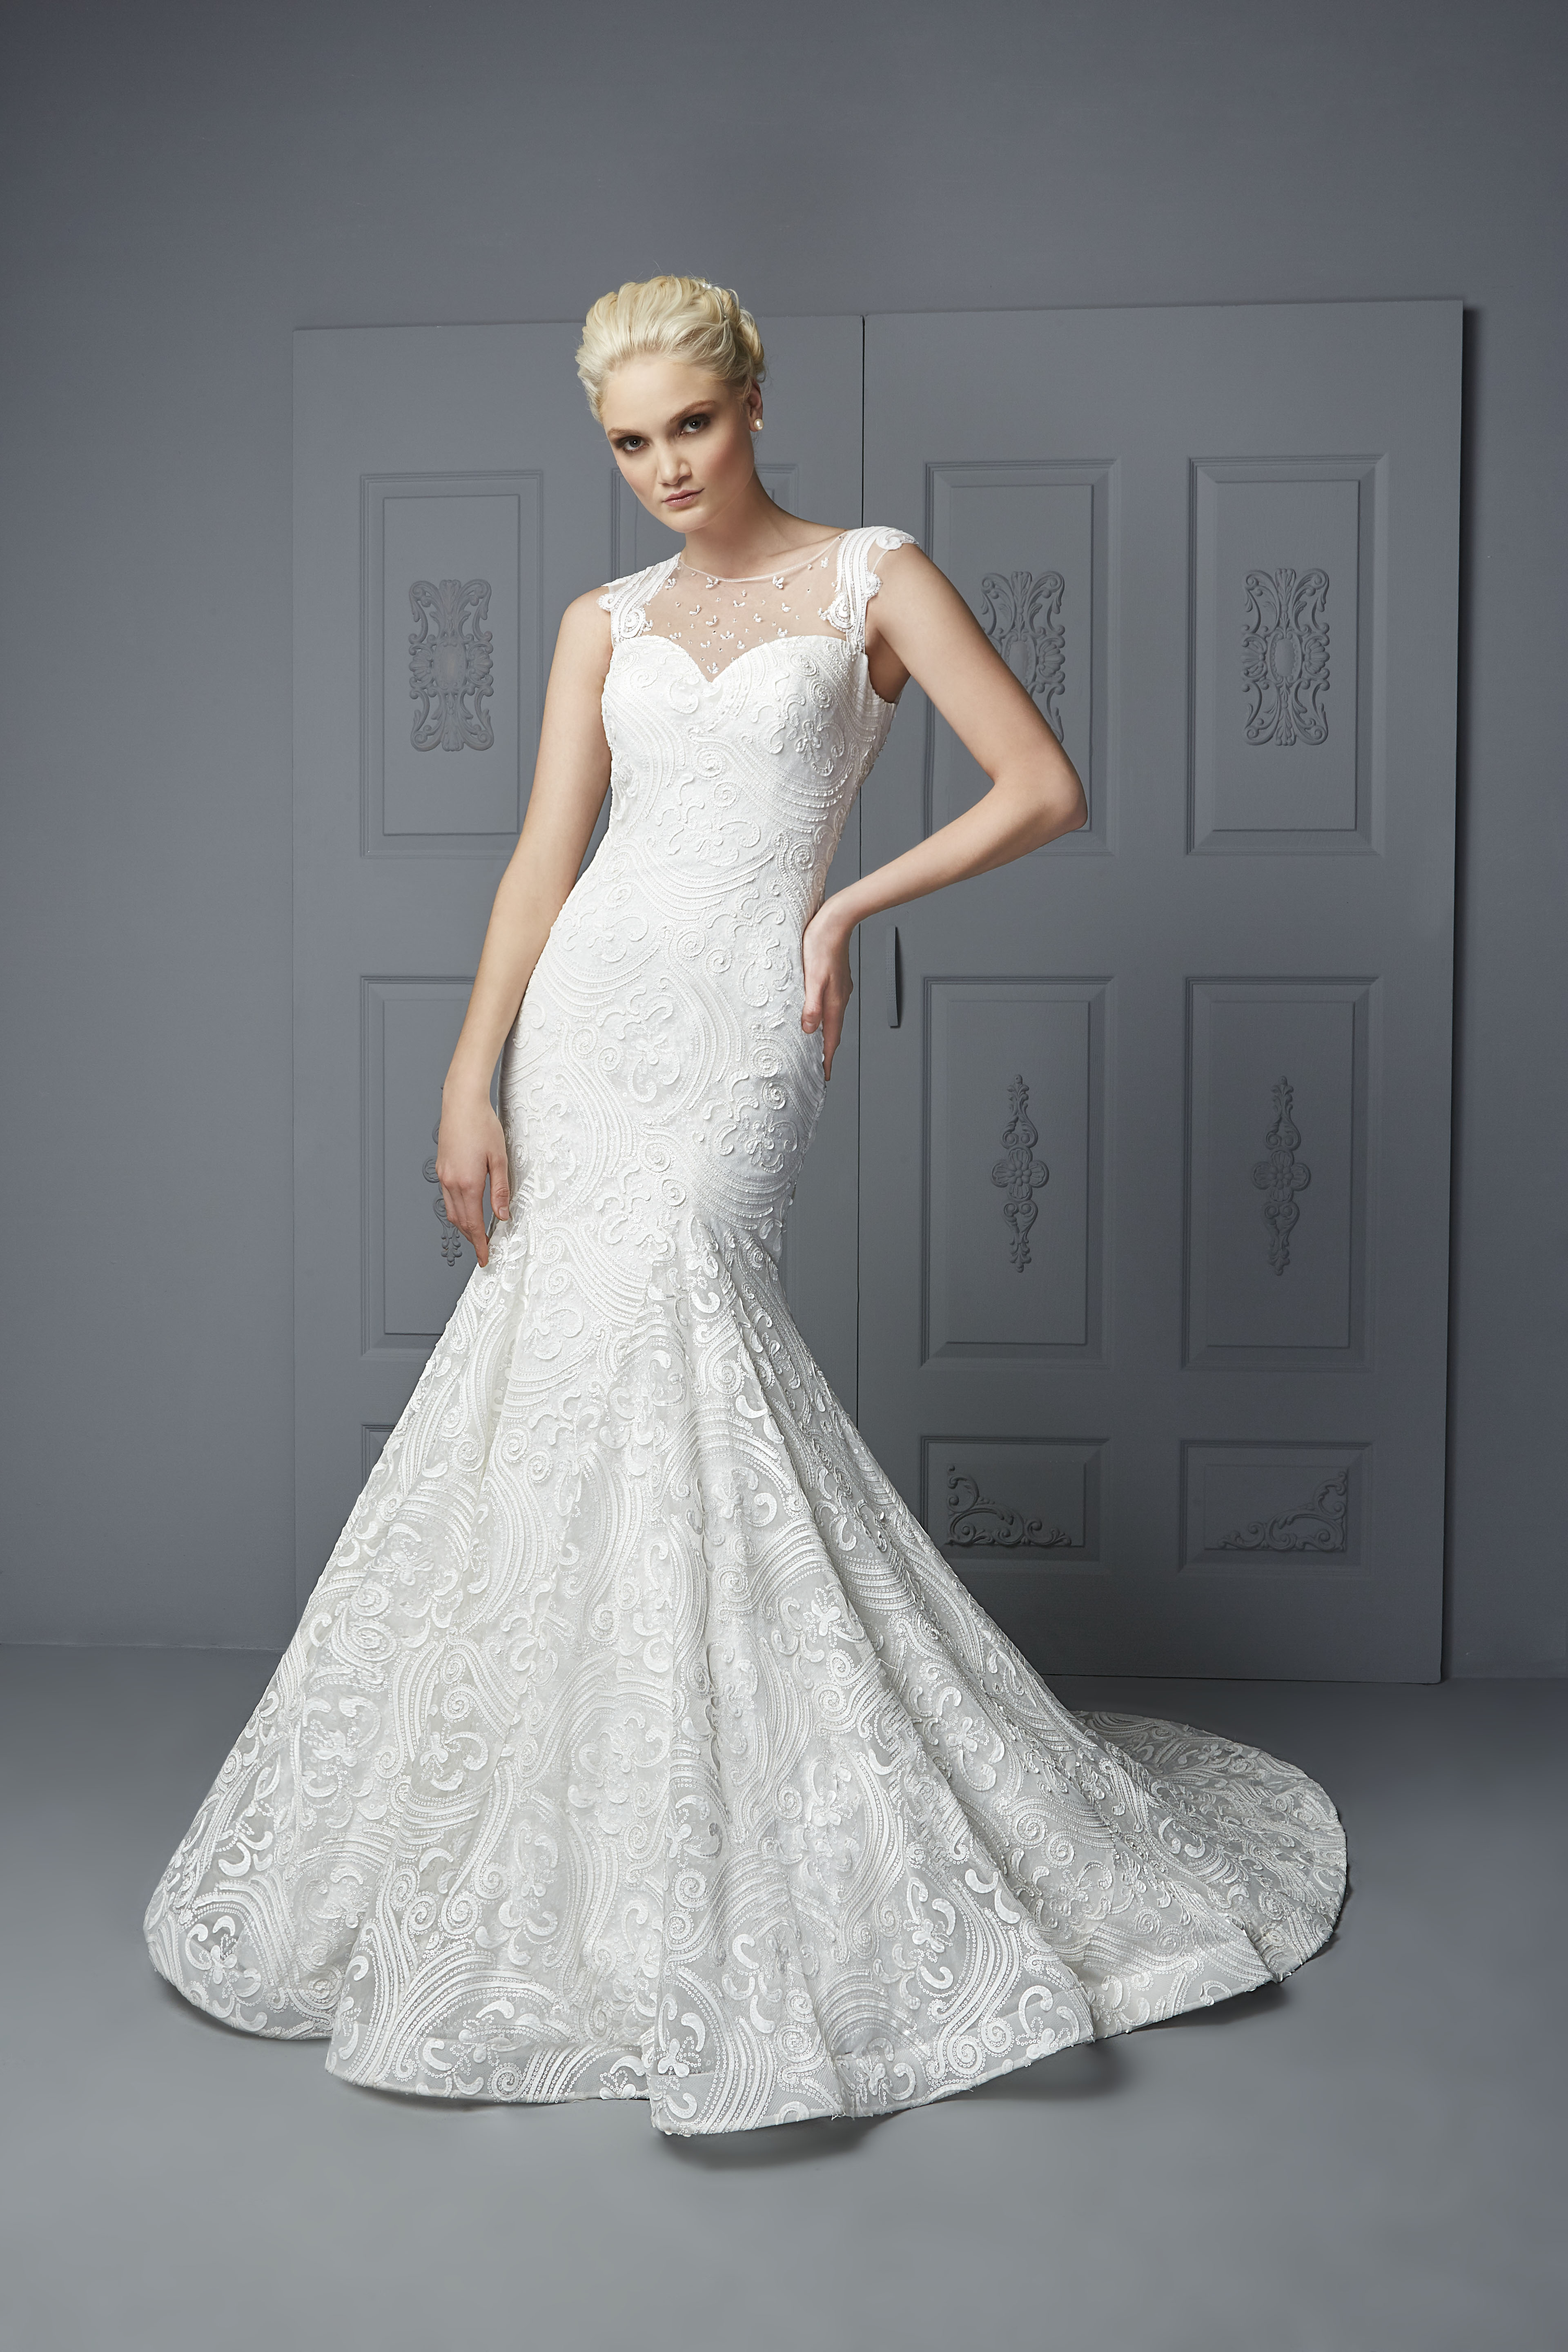 Karla boutique quinceanera and wedding dresses houston for Wedding dresses stores in houston